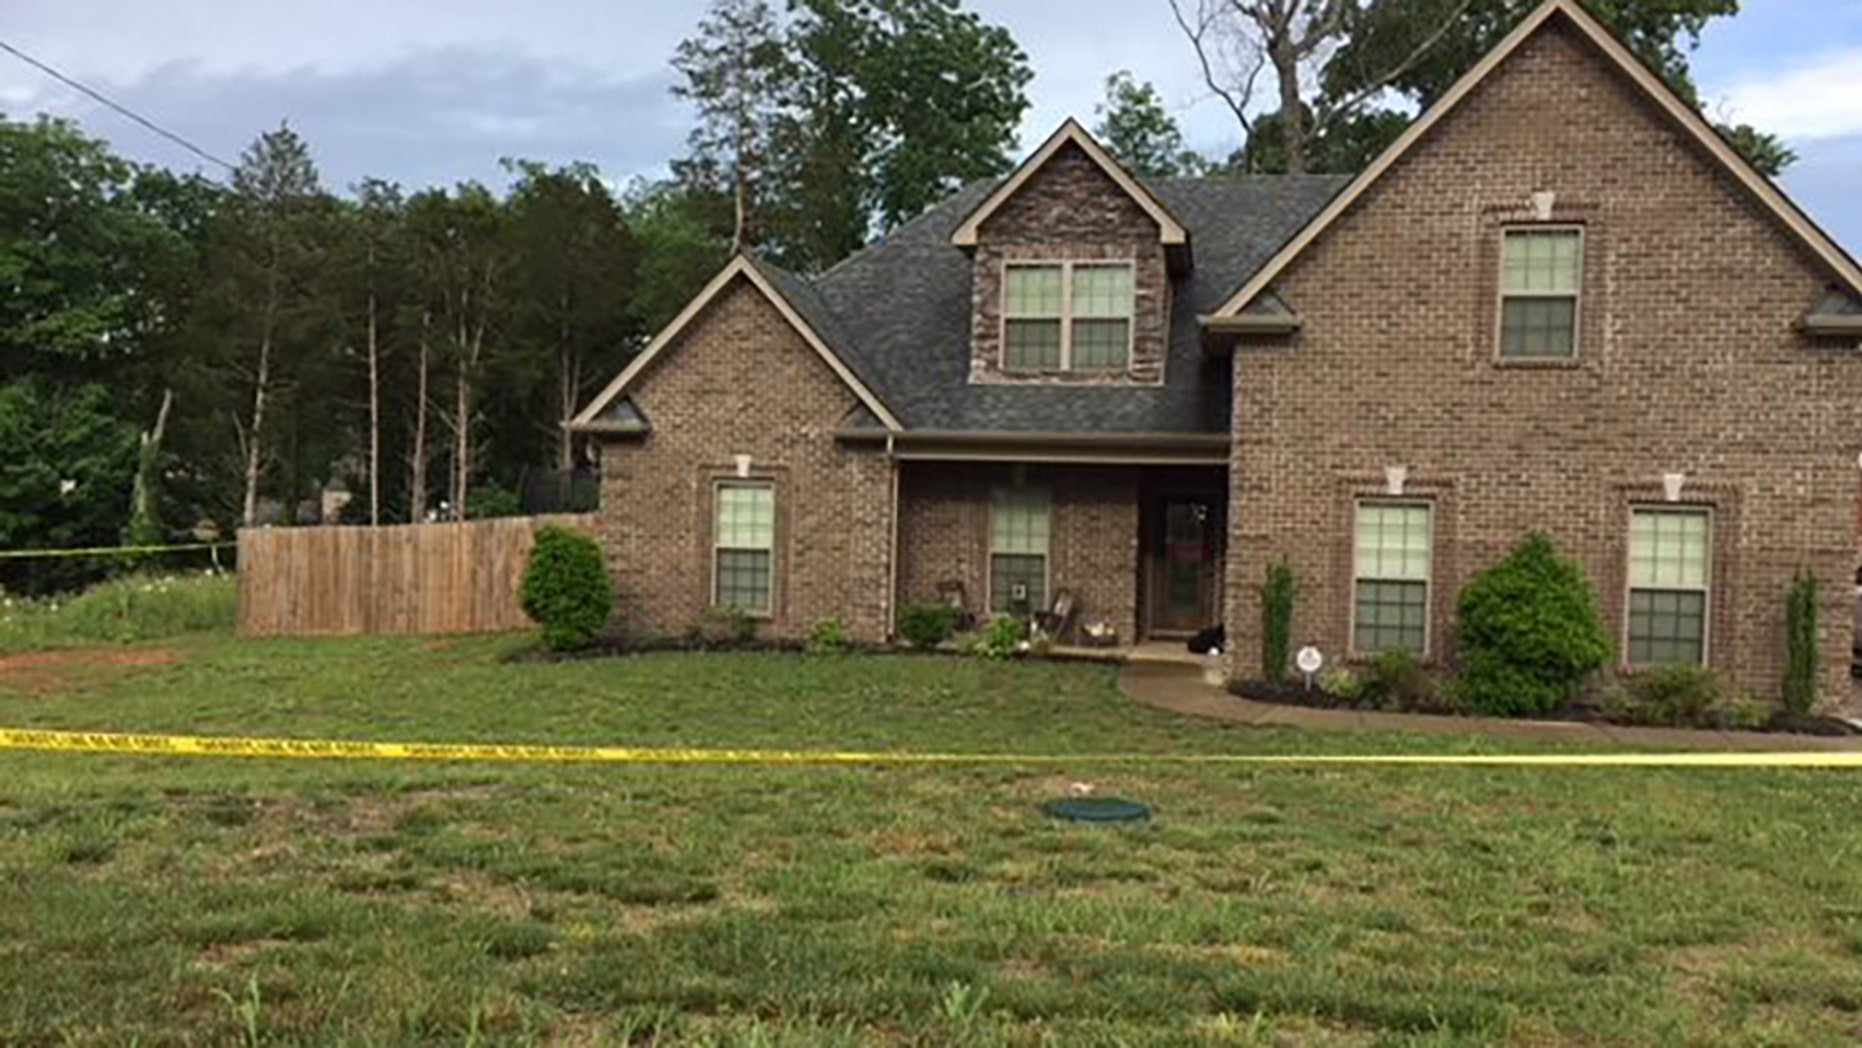 Four people were shot and killed inside a Murfreesboro, Tenn., home, police said